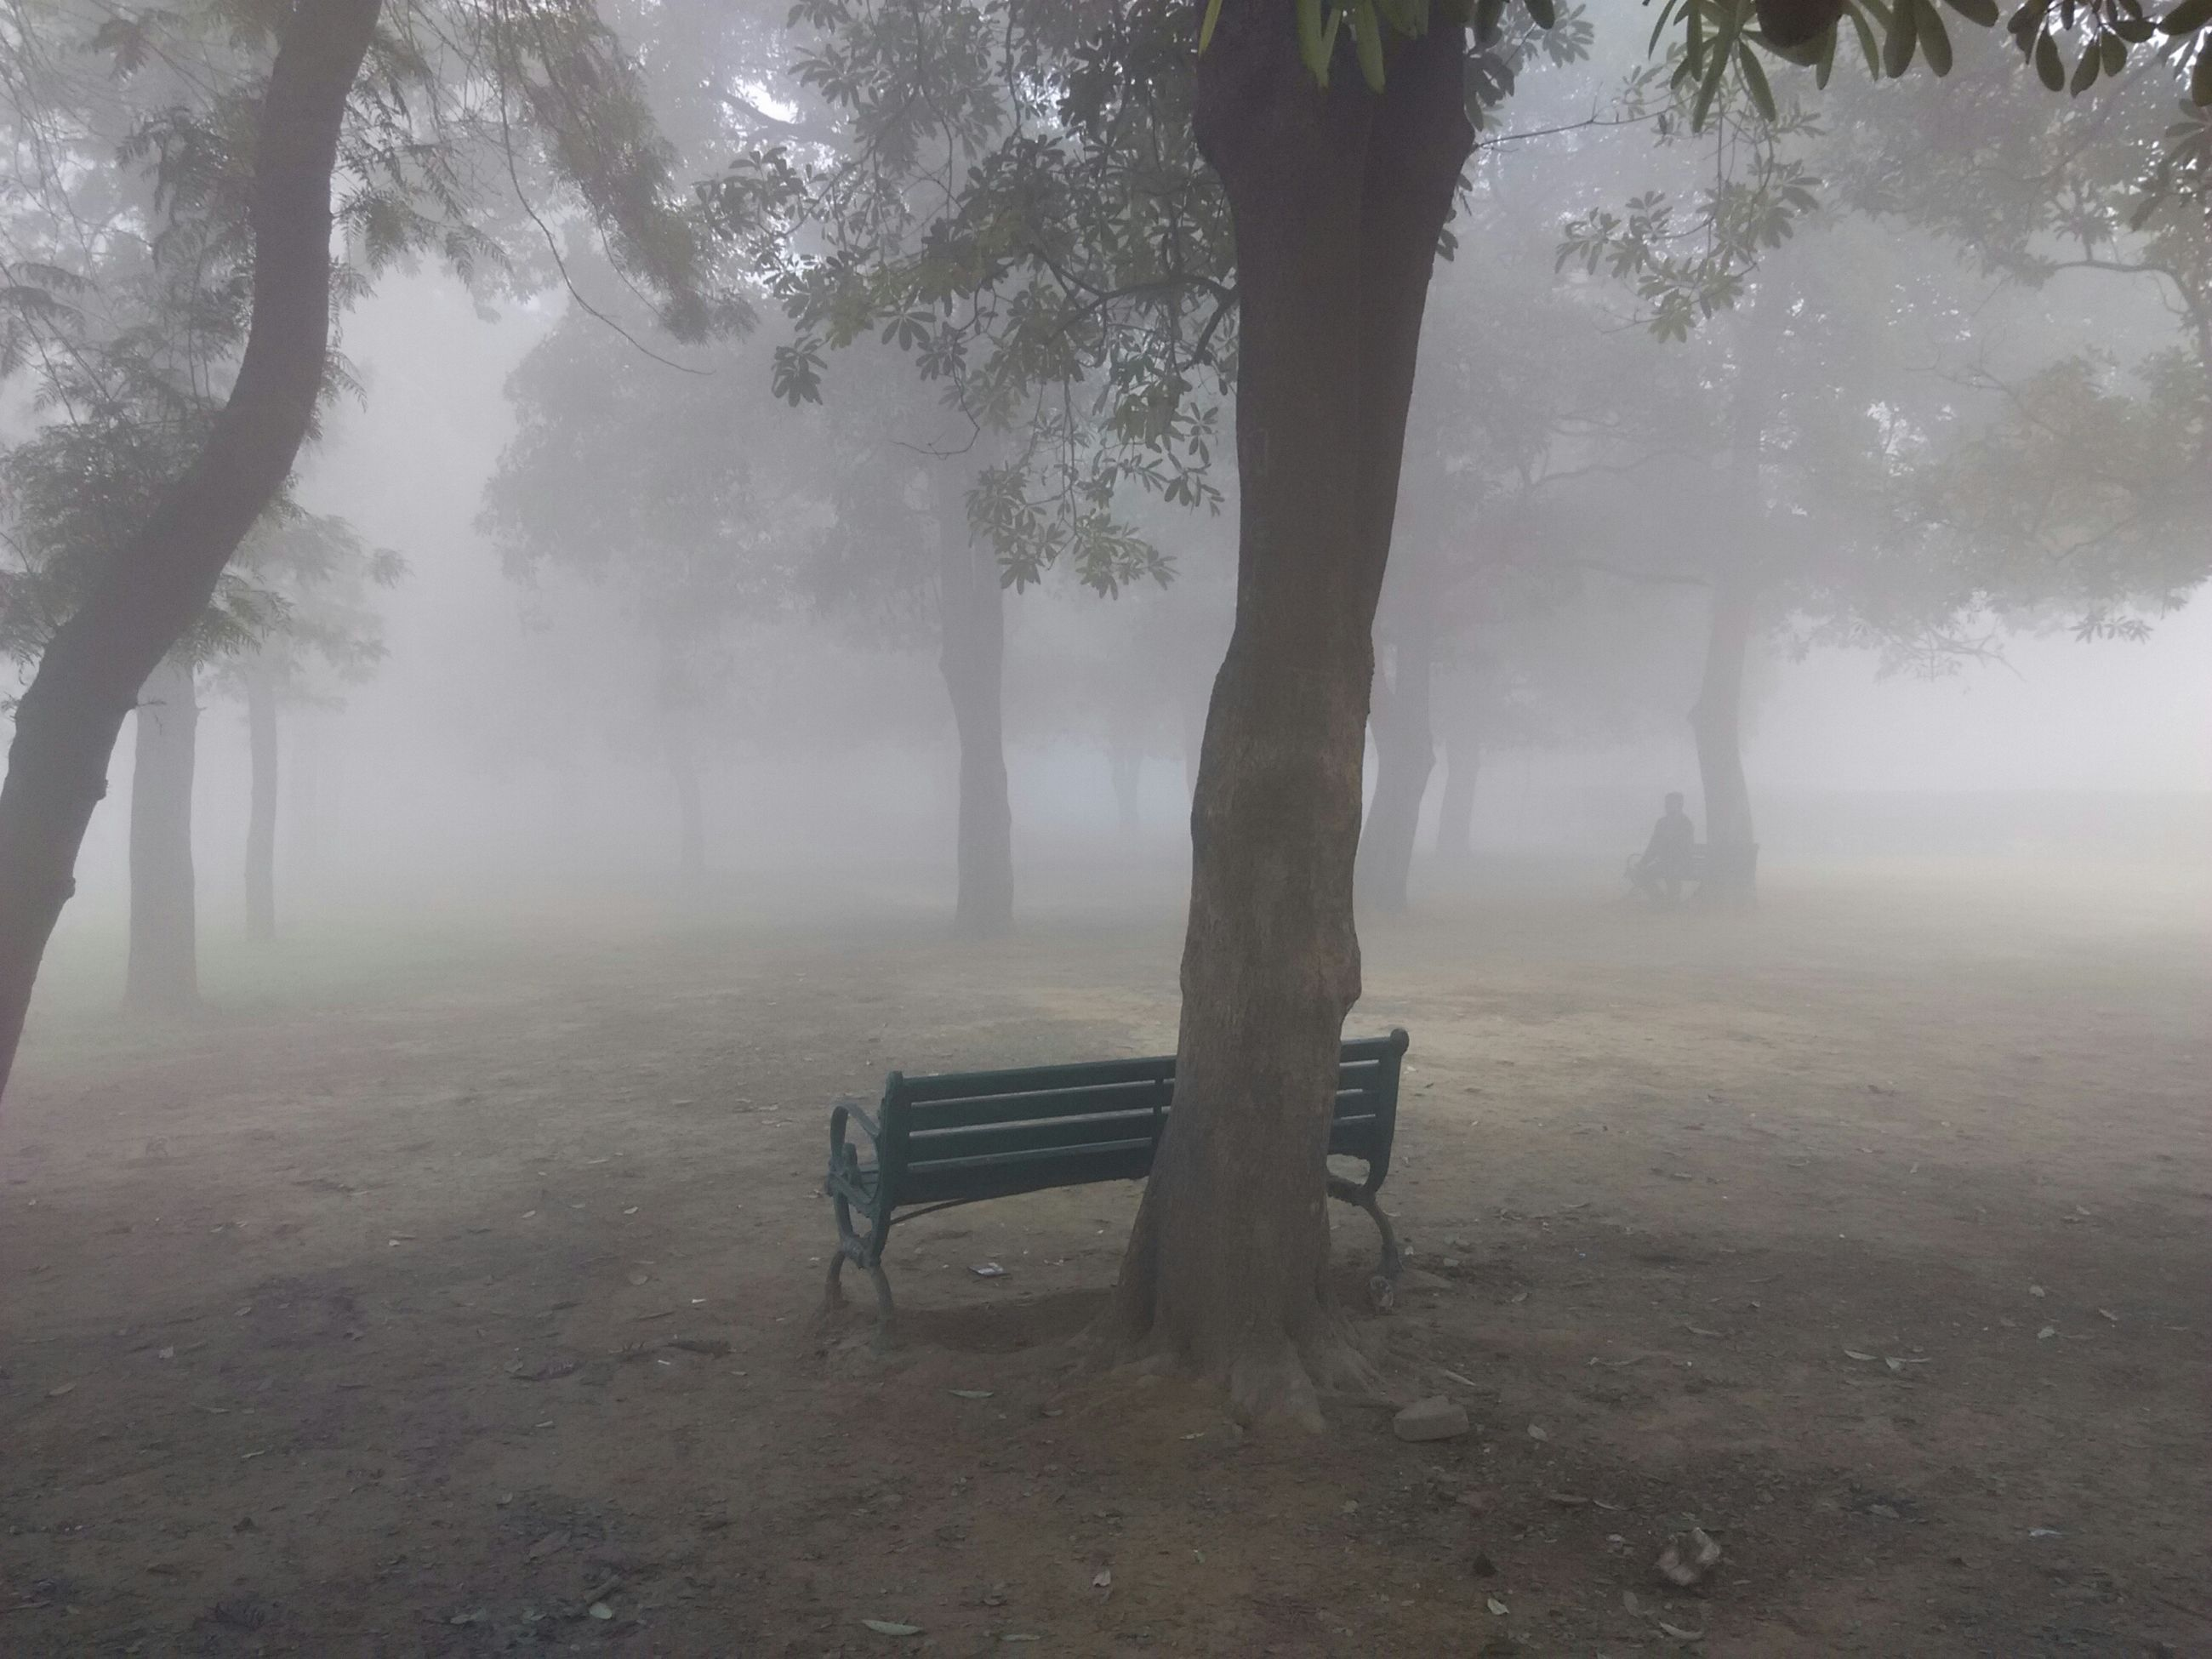 fog, tree, foggy, tranquility, tranquil scene, bench, weather, nature, empty, tree trunk, scenics, beauty in nature, absence, growth, forest, day, park bench, non-urban scene, water, idyllic